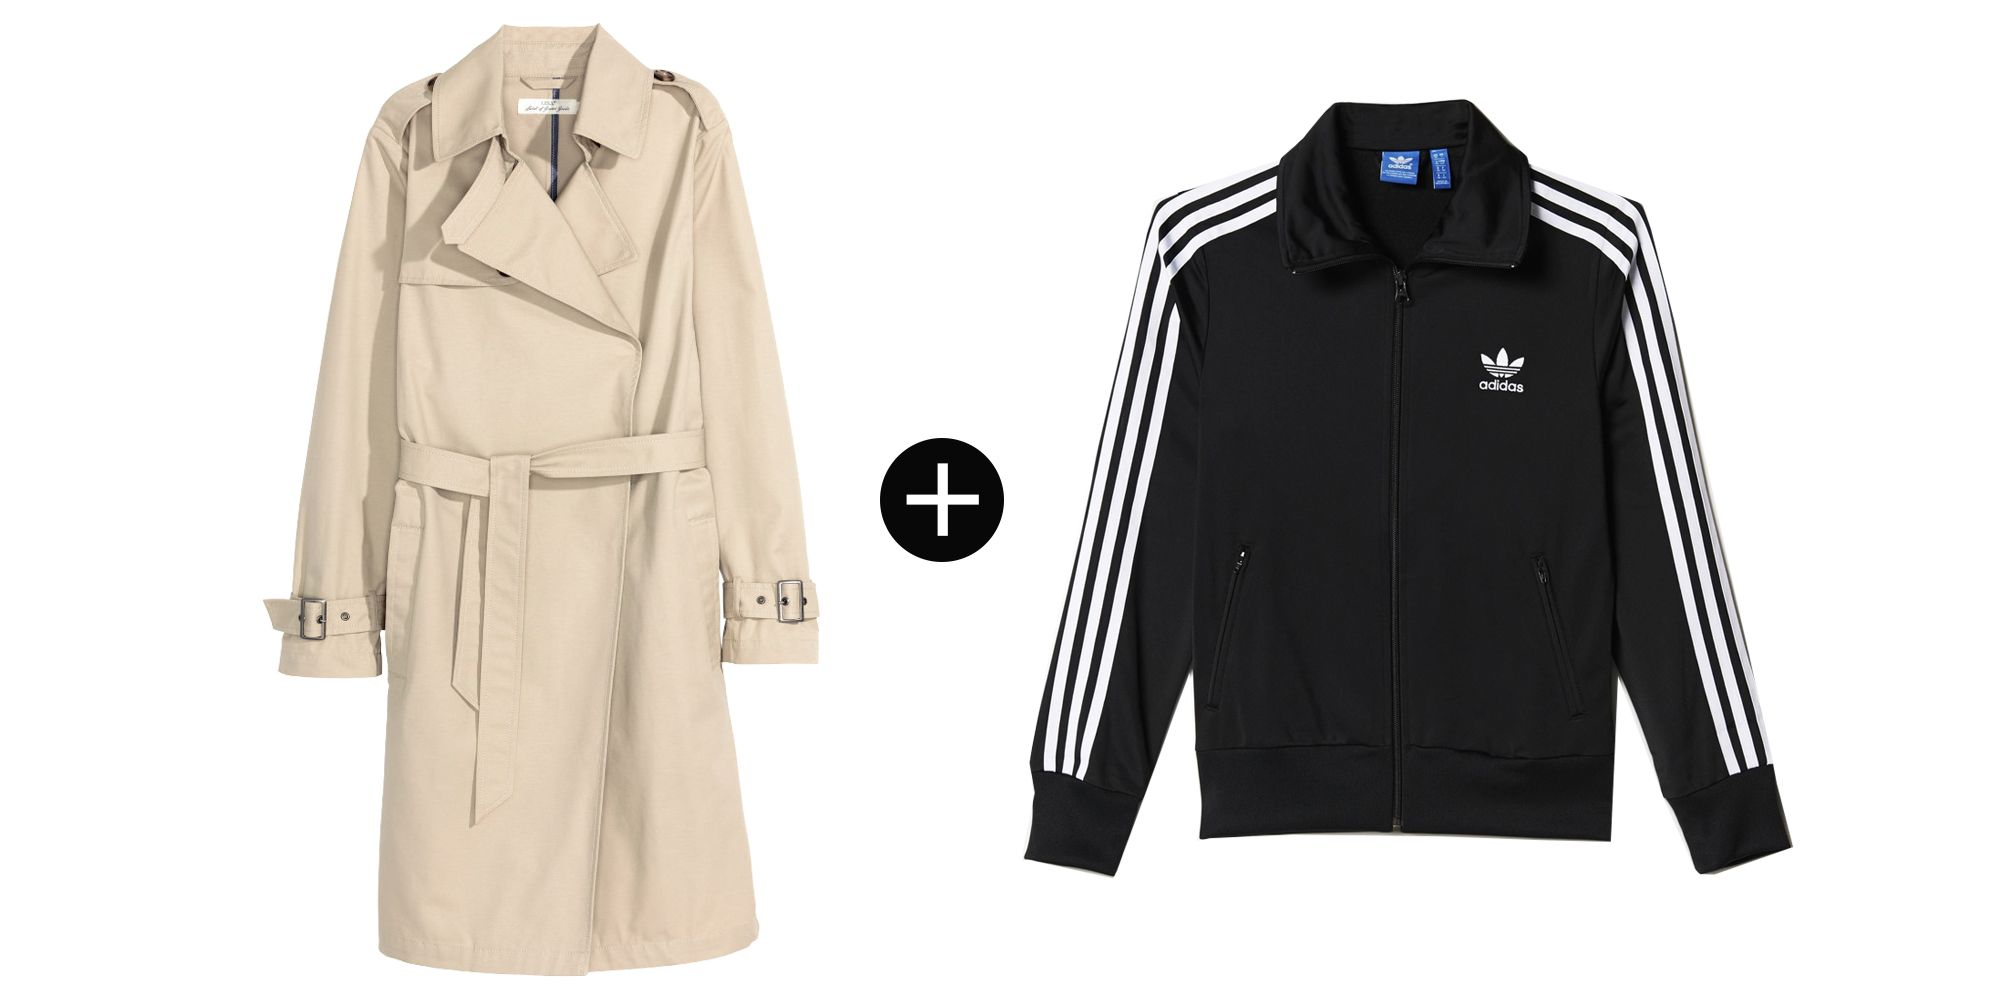 """<p>H&M Trench Coat, $60; <a href=""""http://www.hm.com/us/product/37482?article=37482-A"""" target=""""_blank"""">hm.com</a></p><p>Adidas Firebird Track Jacket, $70; <a href=""""http://www.adidas.com/us/firebird-track-jacket/AJ8416.html"""" target=""""_blank"""">adidas.com</a></p>"""